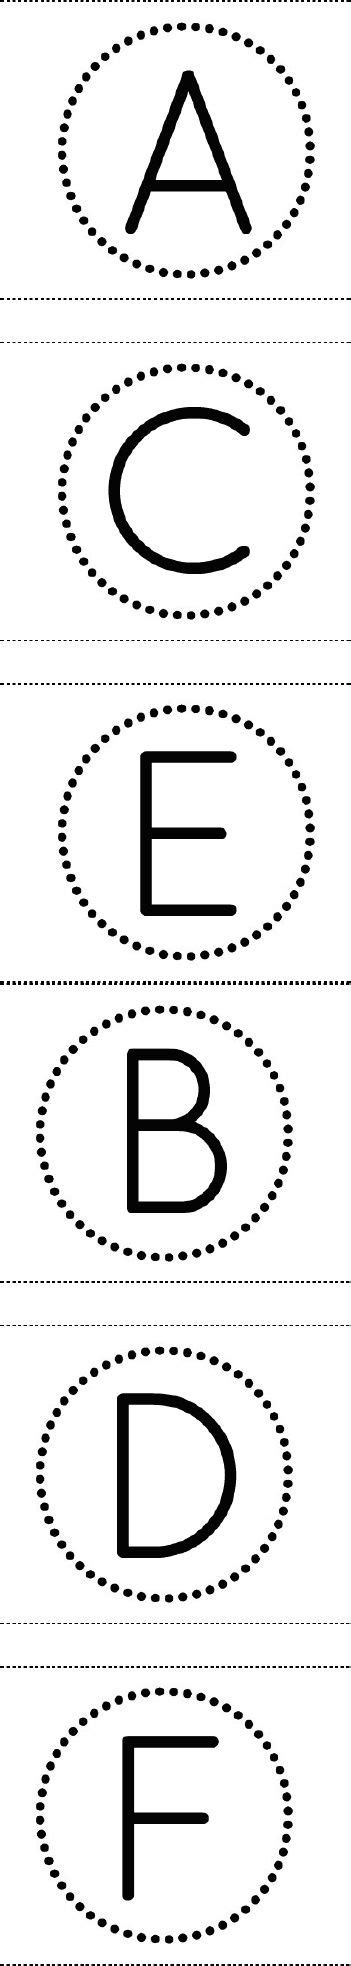 printable alphabet letters in circles free printable circle banner alphabet for making